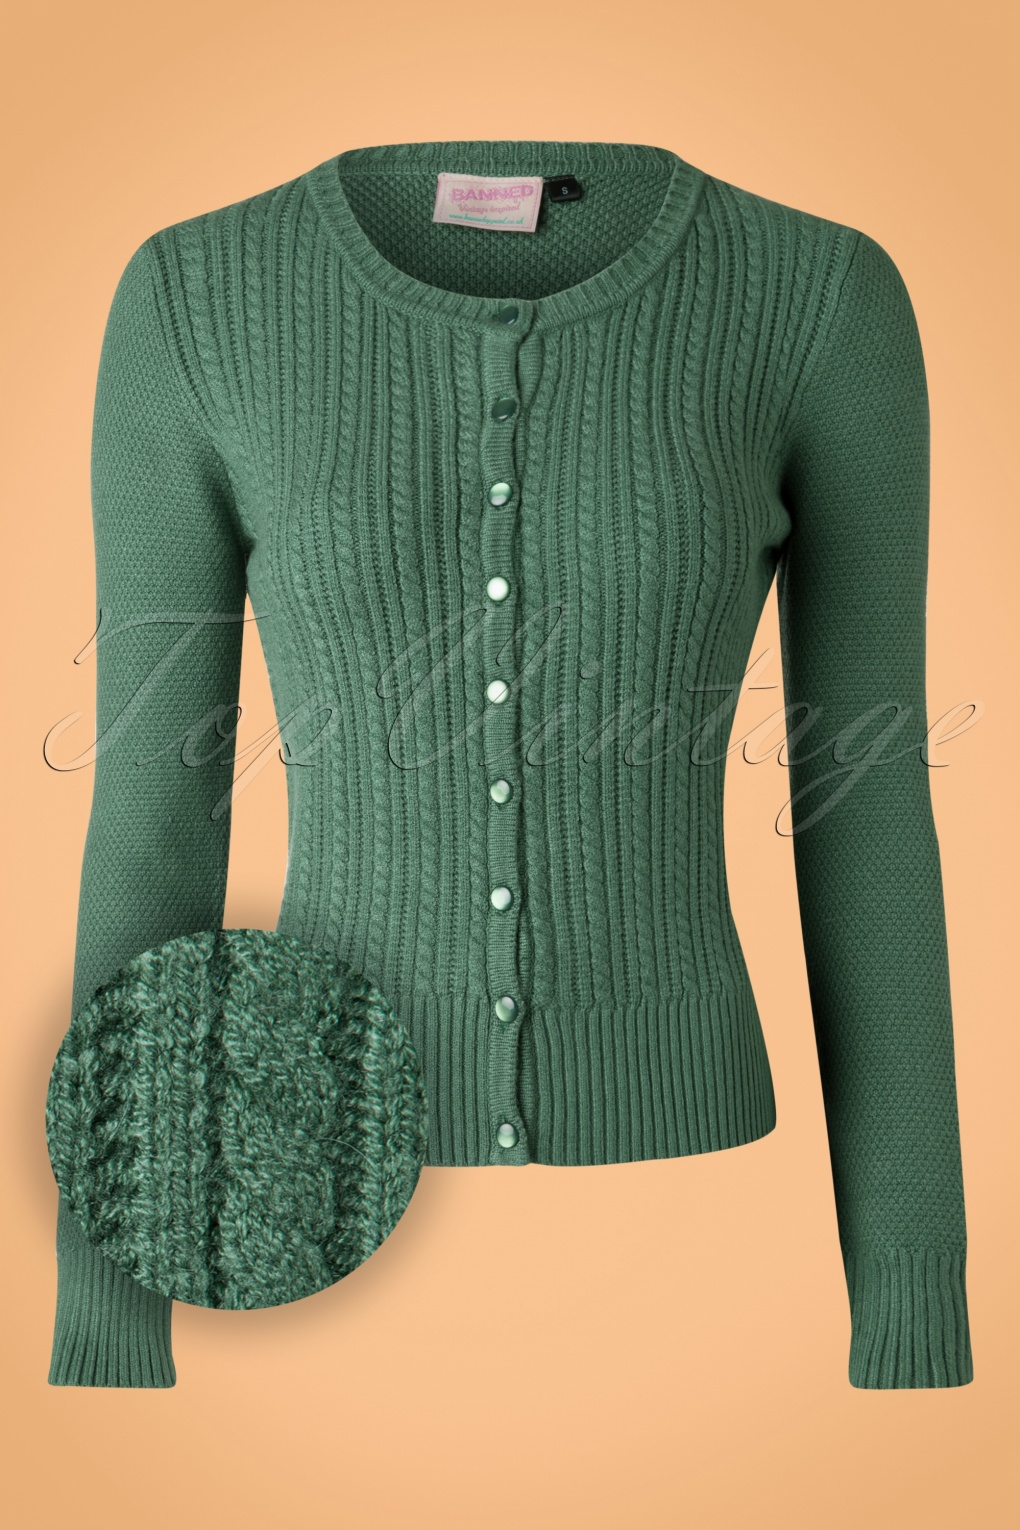 Vintage Sweaters: 1940s, 1950s, 1960s Pictures 40s Dream On Cardigan in Vintage Green £31.56 AT vintagedancer.com